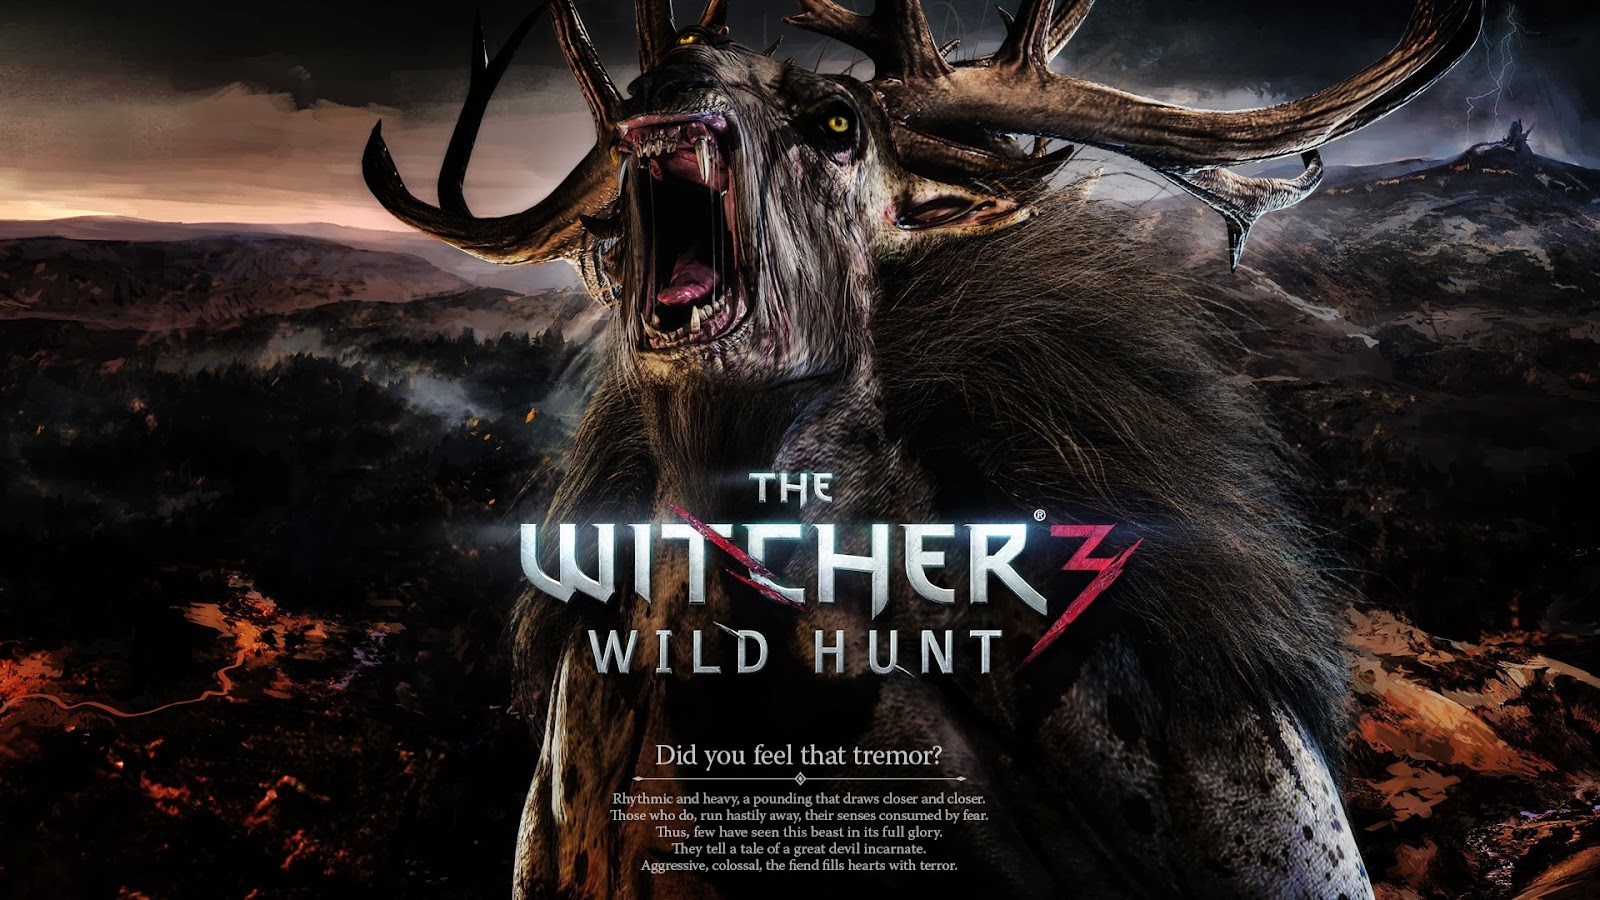 The Witcher 3 - RELEASE DATE